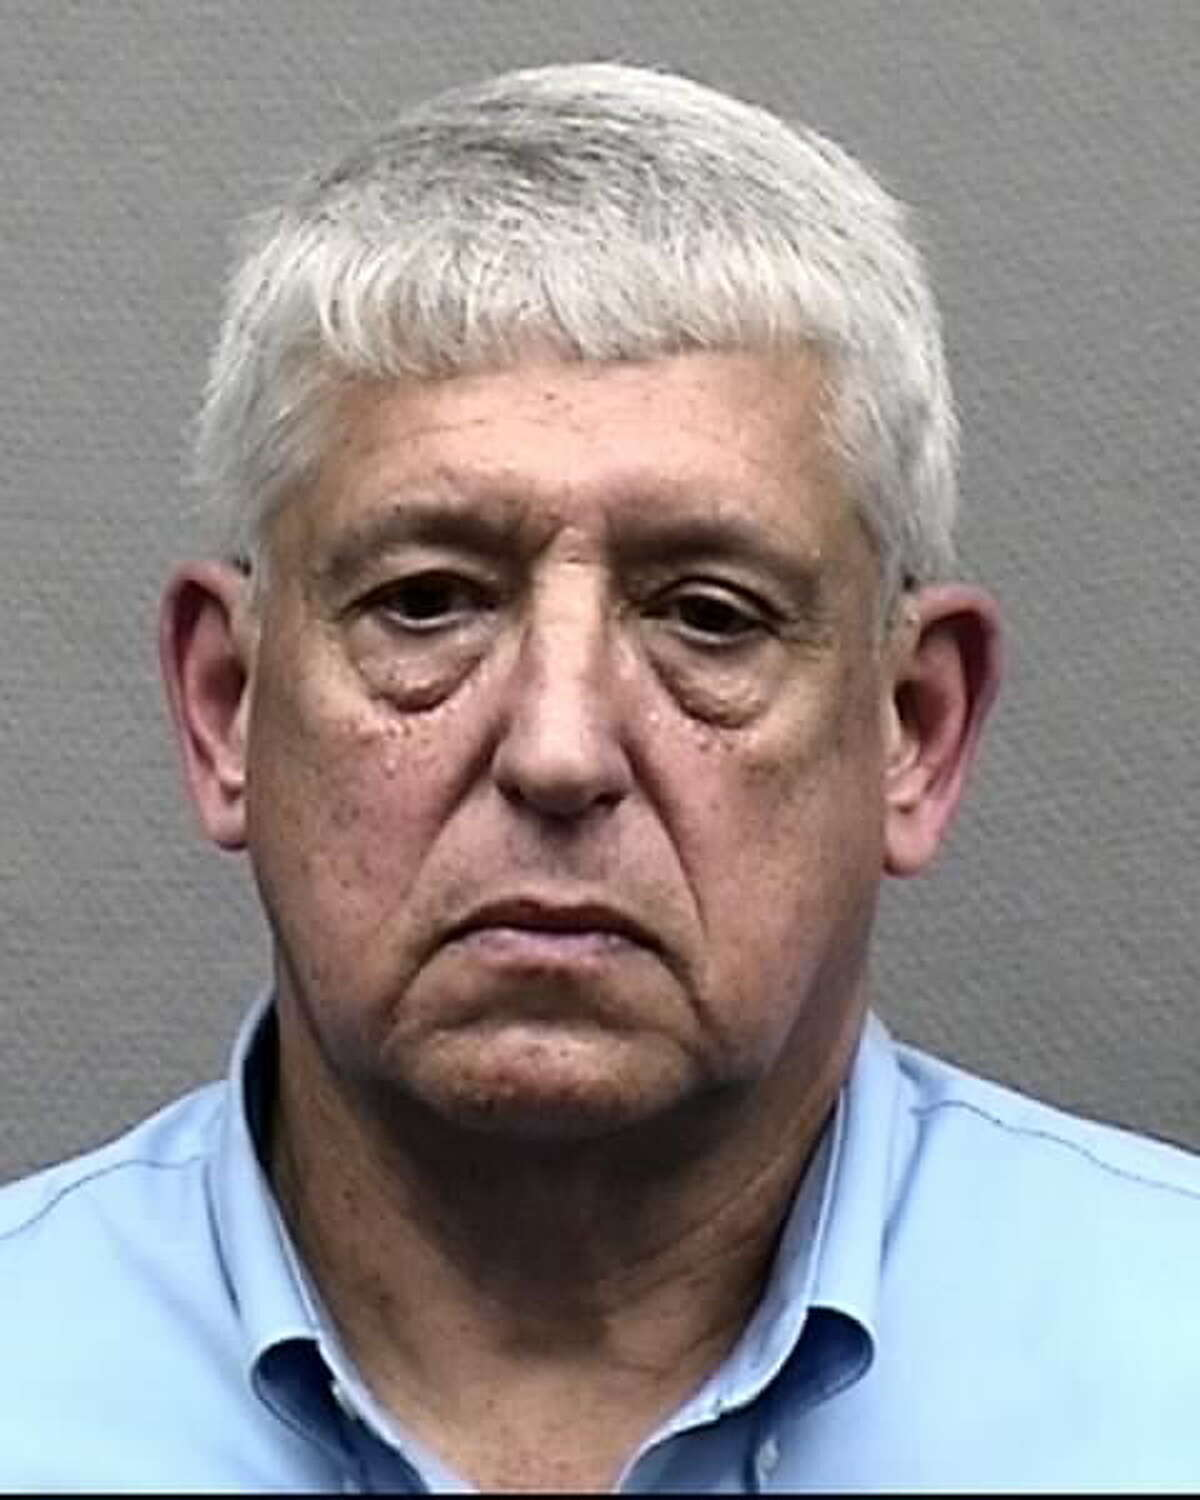 A Houston Police Department mugshot shows Emile Fair, 63, on Feb. 3, 2017. Fair was charged with misdemeanor prostitution.